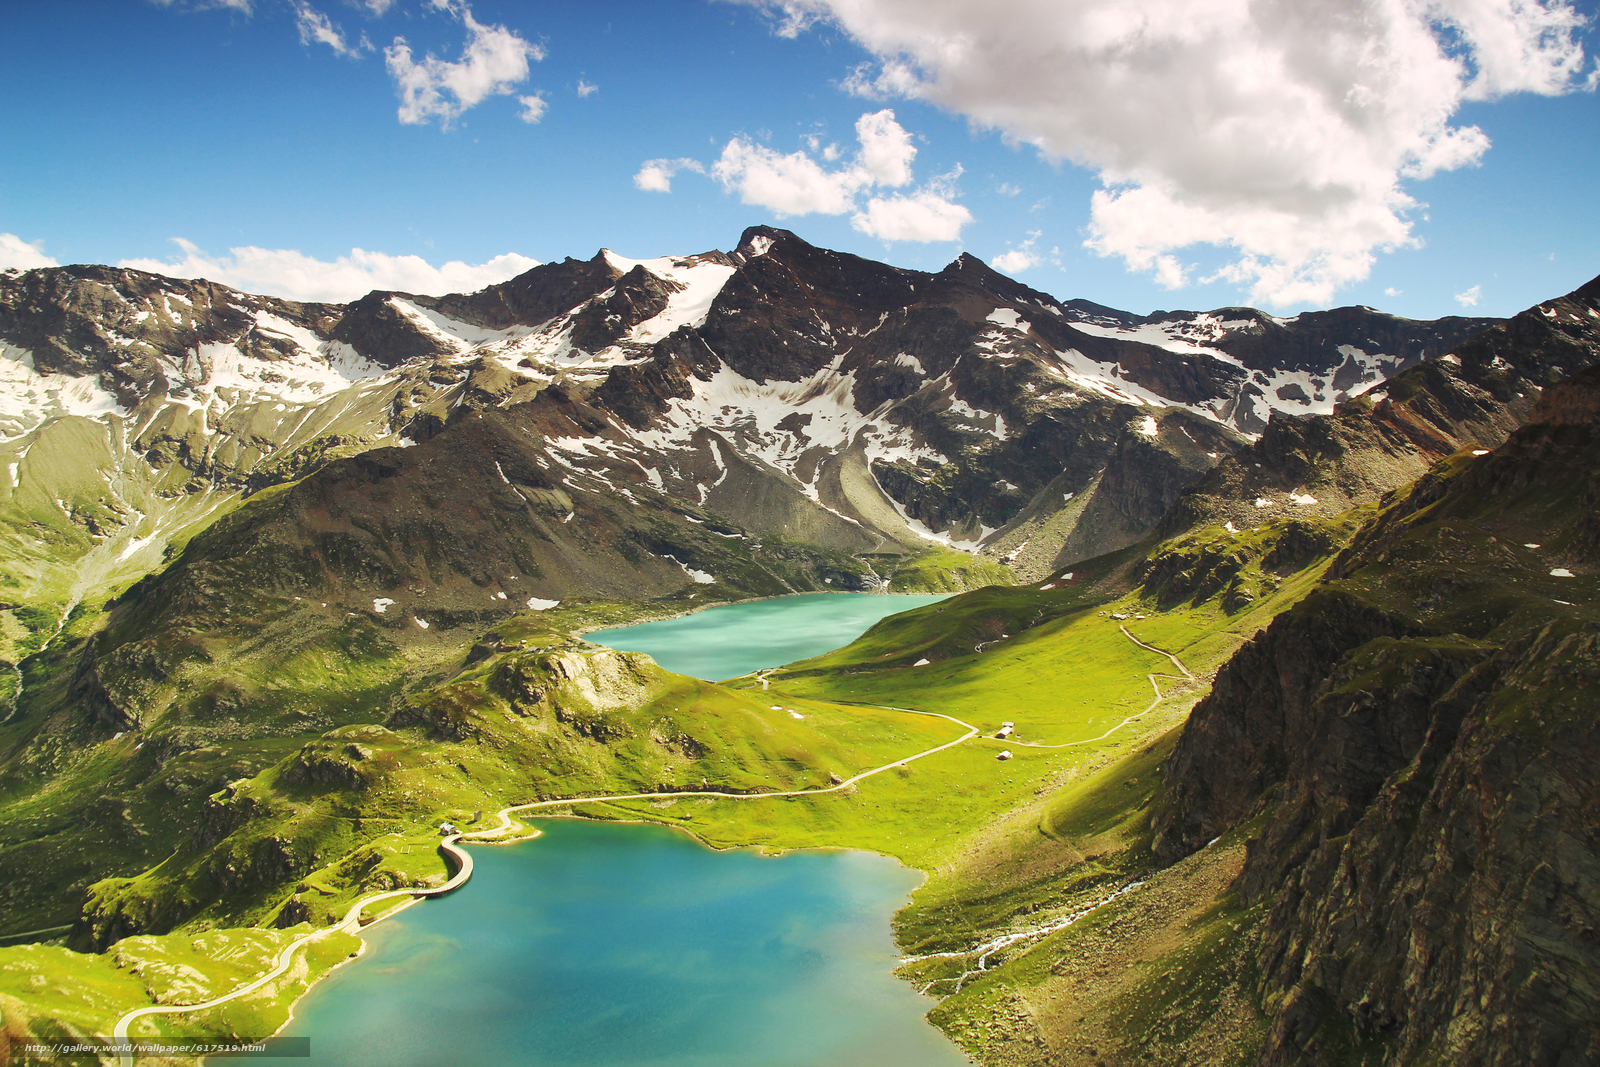 Ceresole Reale, Italy, mountains, lake, hills, clouds